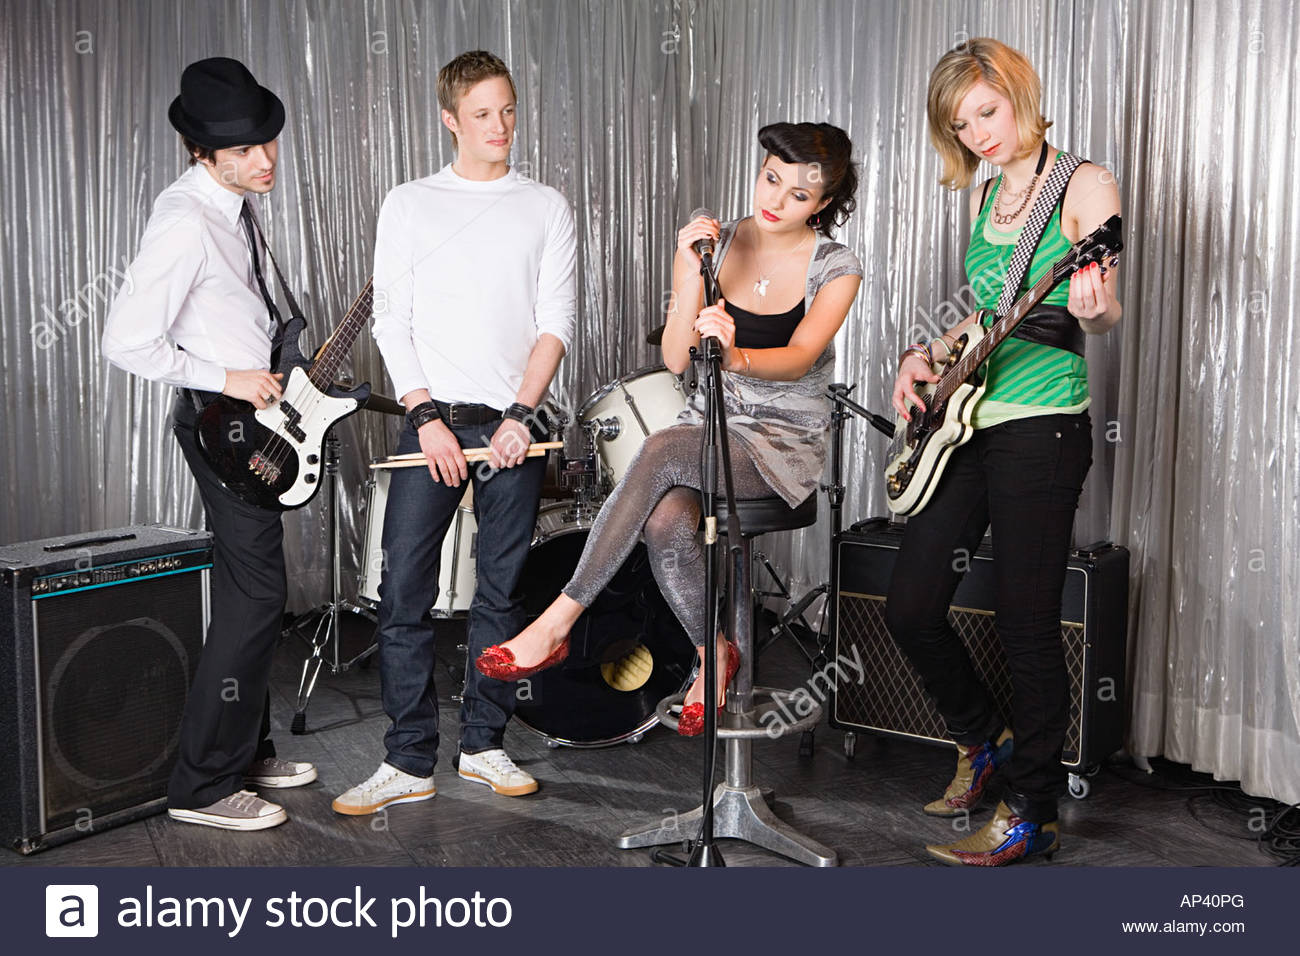 Rock band practising - Stock Image